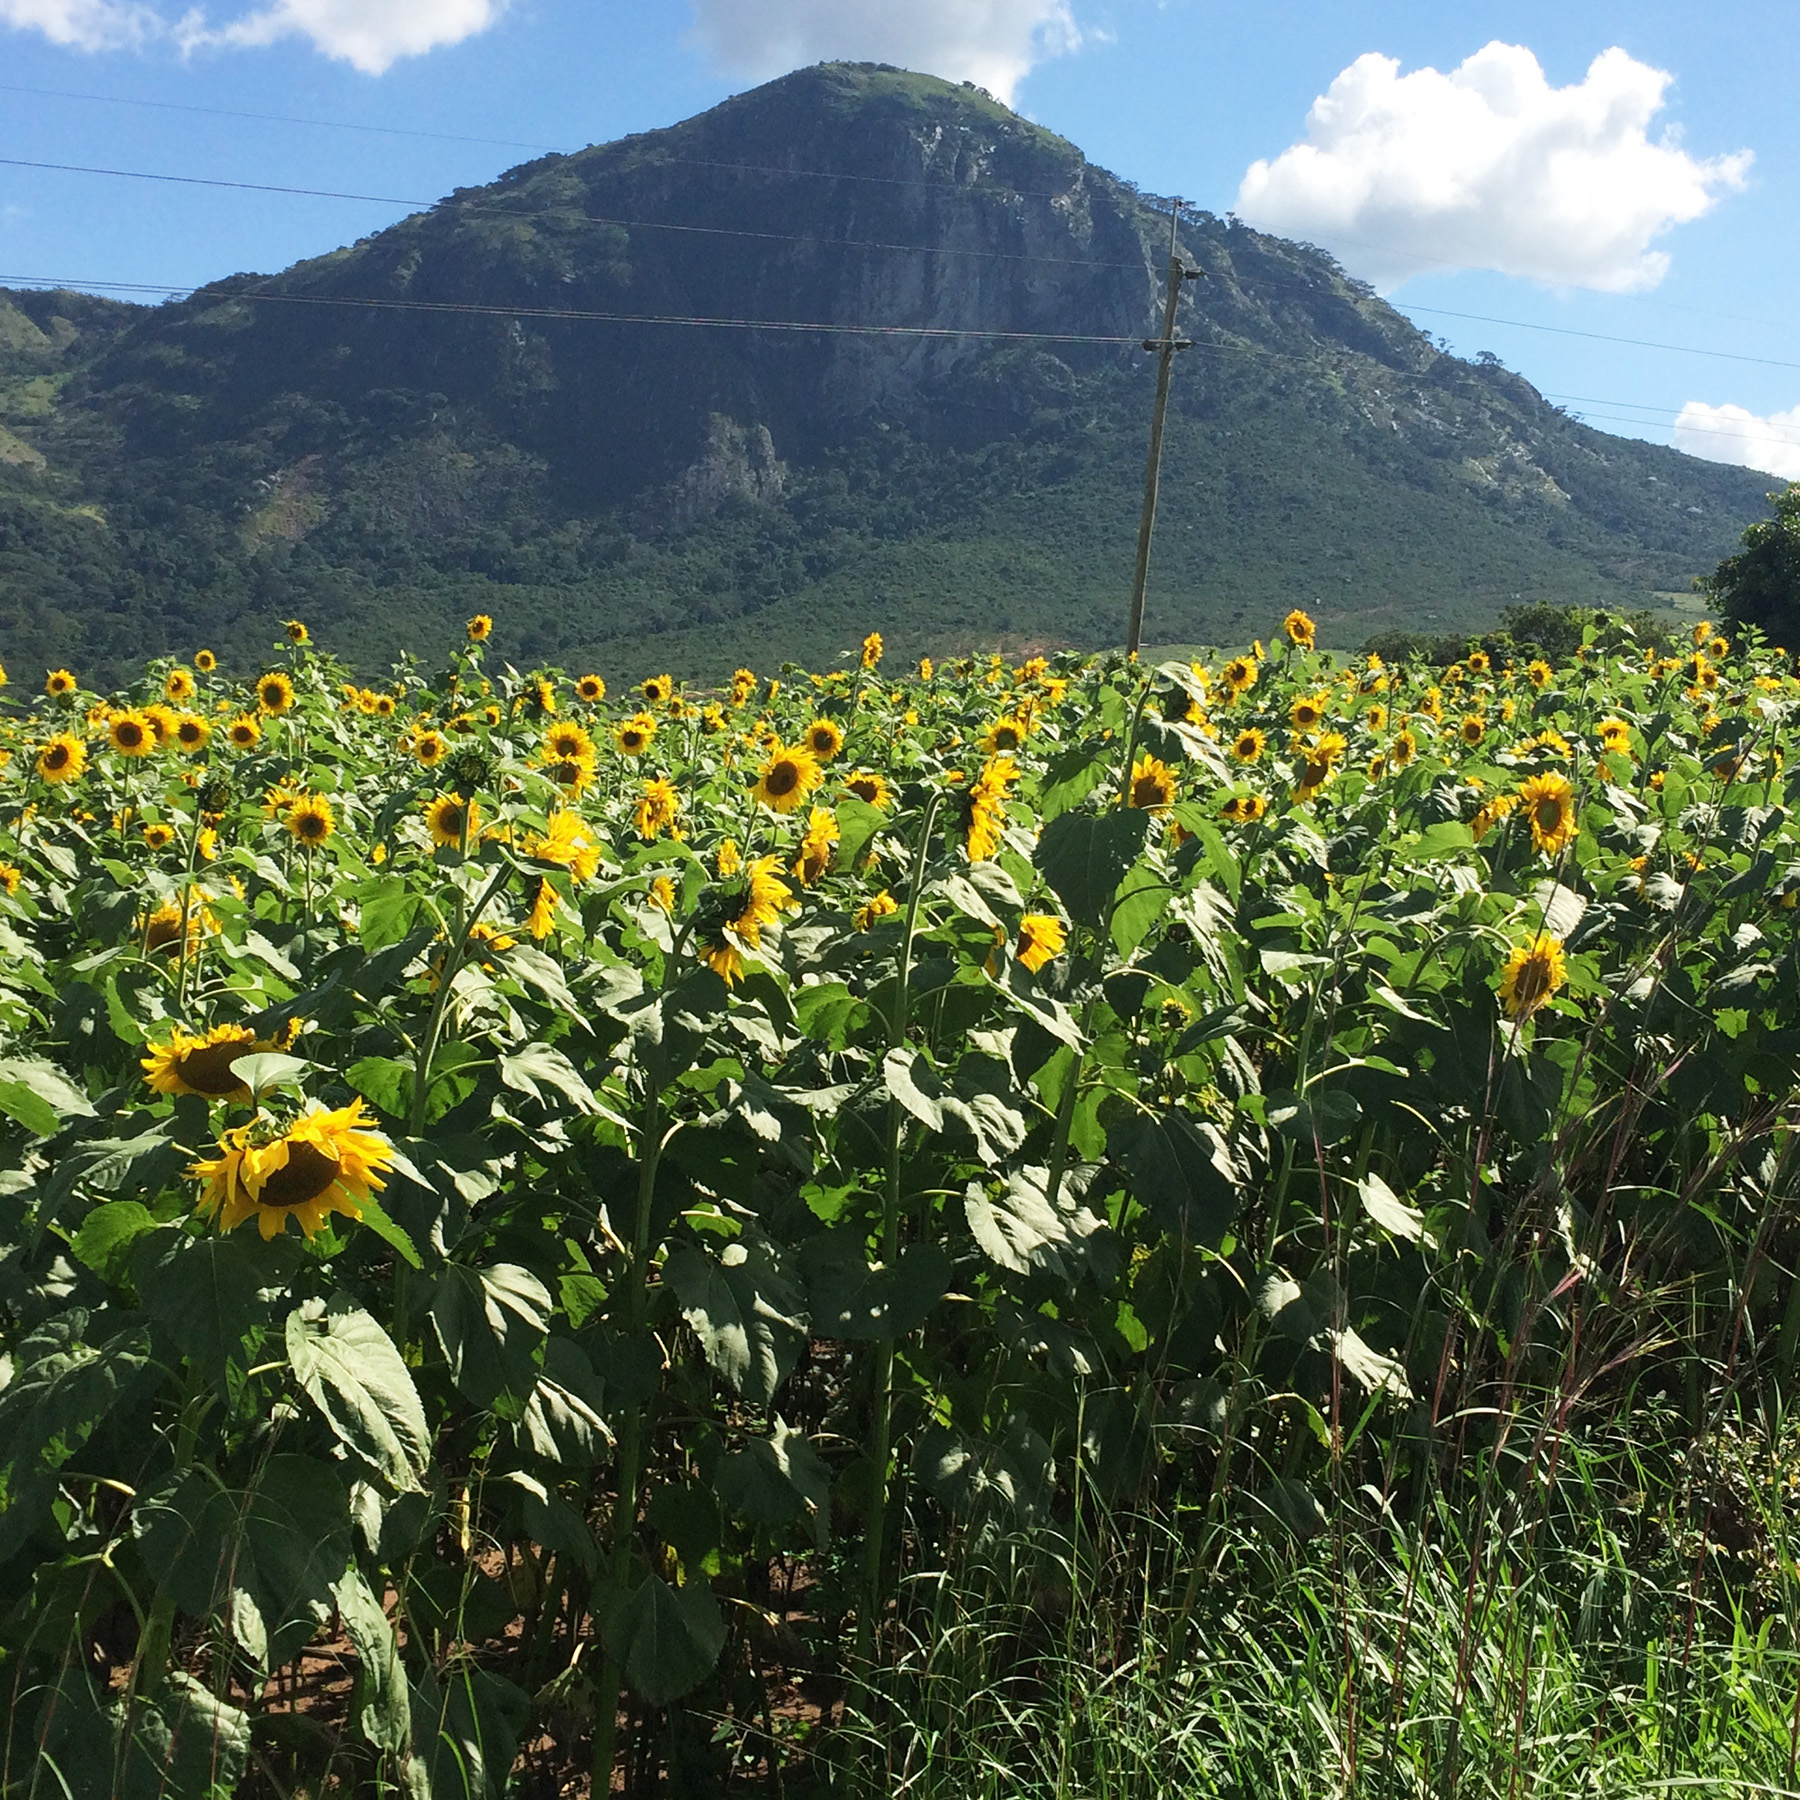 A member's sunflower farm in Gairo